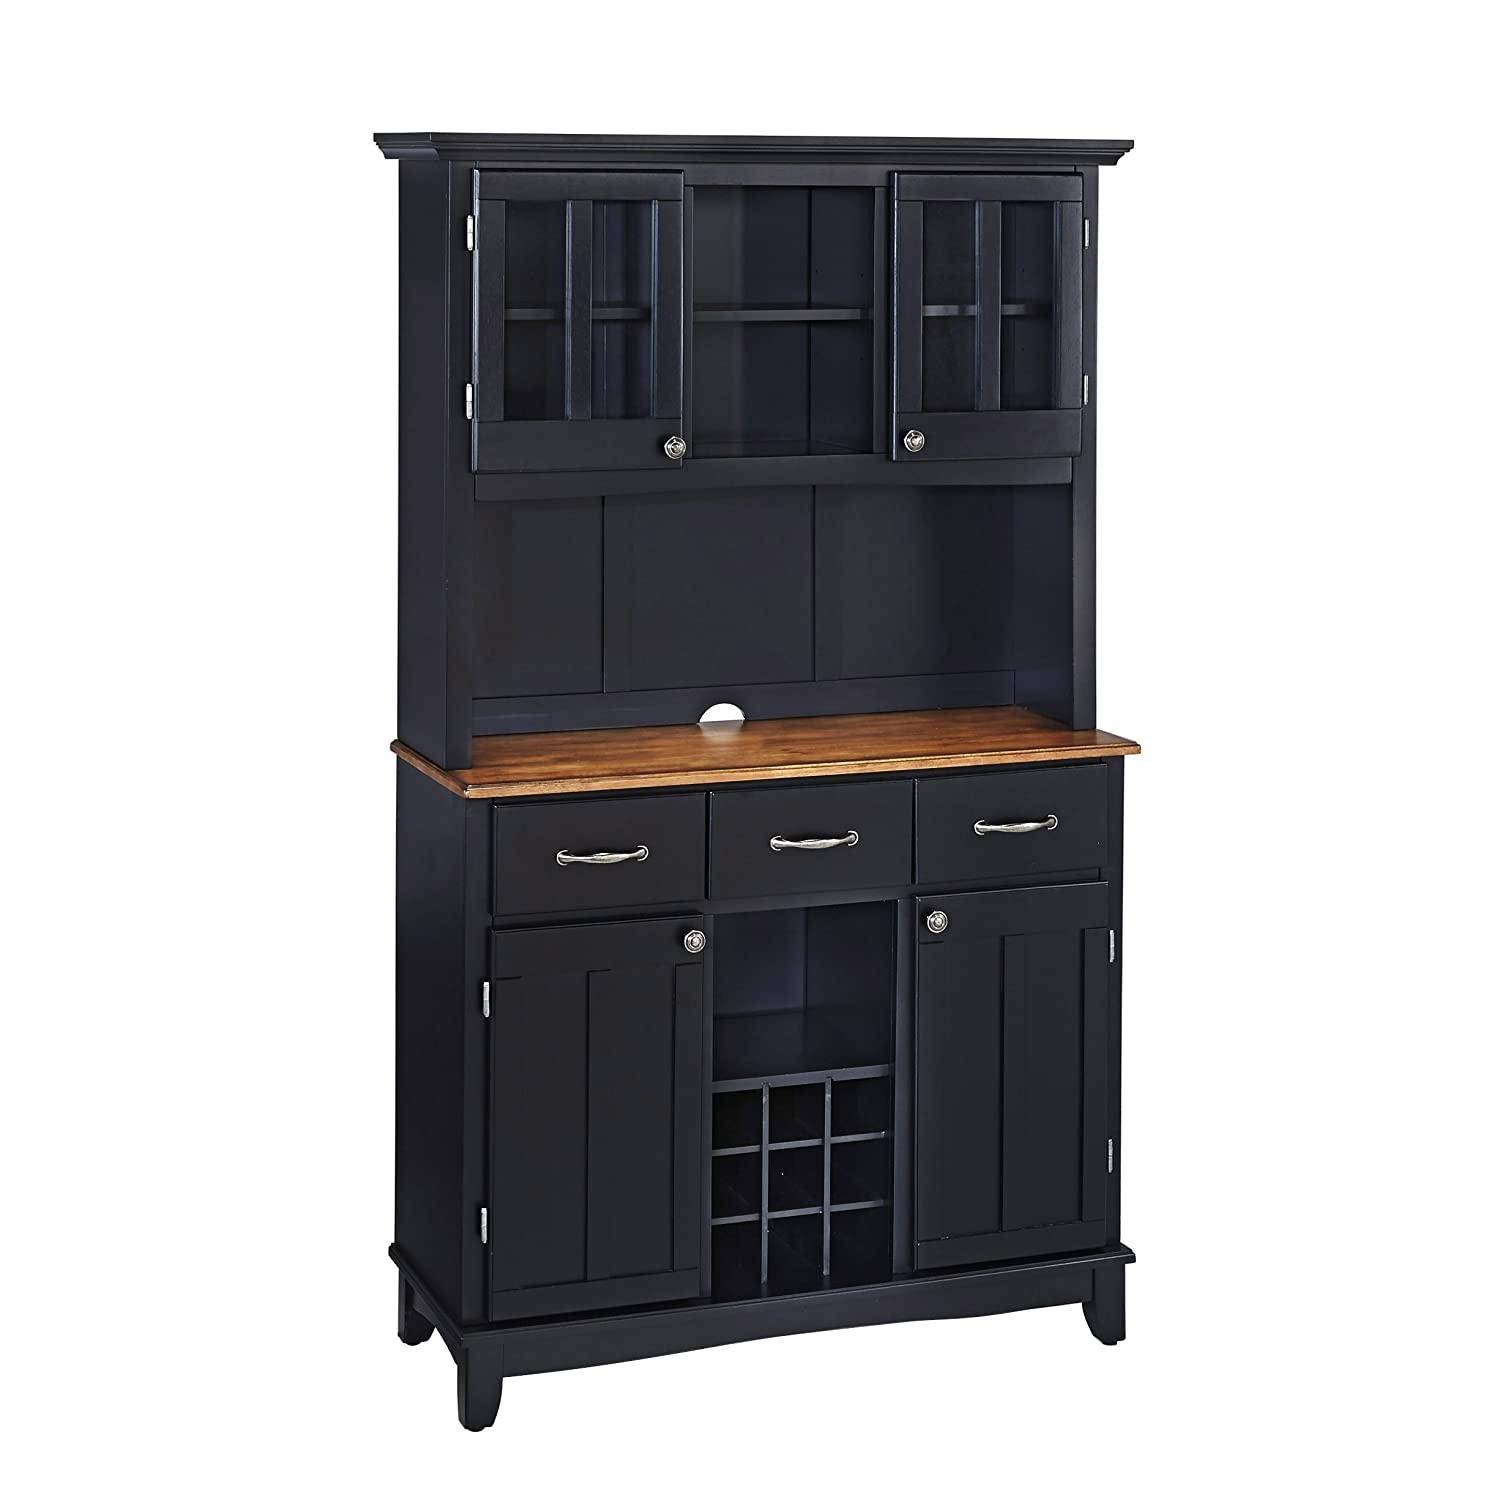 cabinets hutches buffet ideas kitchen hbe hutch amazing cabinet